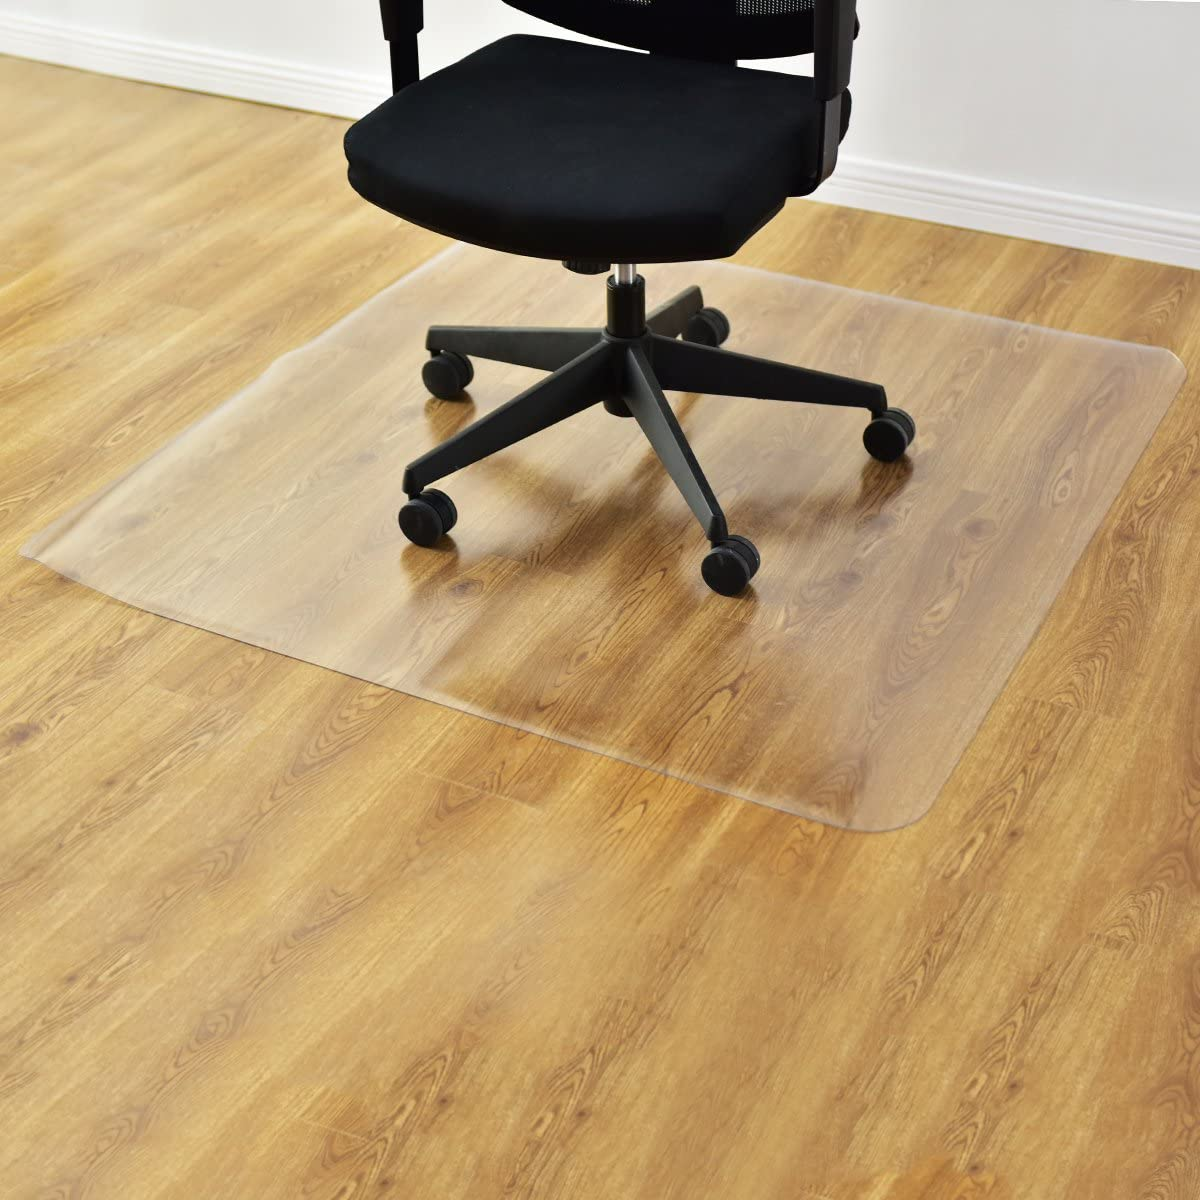 GOFLAME Desk Chair Floor Mat for Hardwood Floor, PVC Plastic Clear Mat Oversized, Premium Quality Floor Protection Mat Heavy Duty, Thick and Sturdy (Clear)